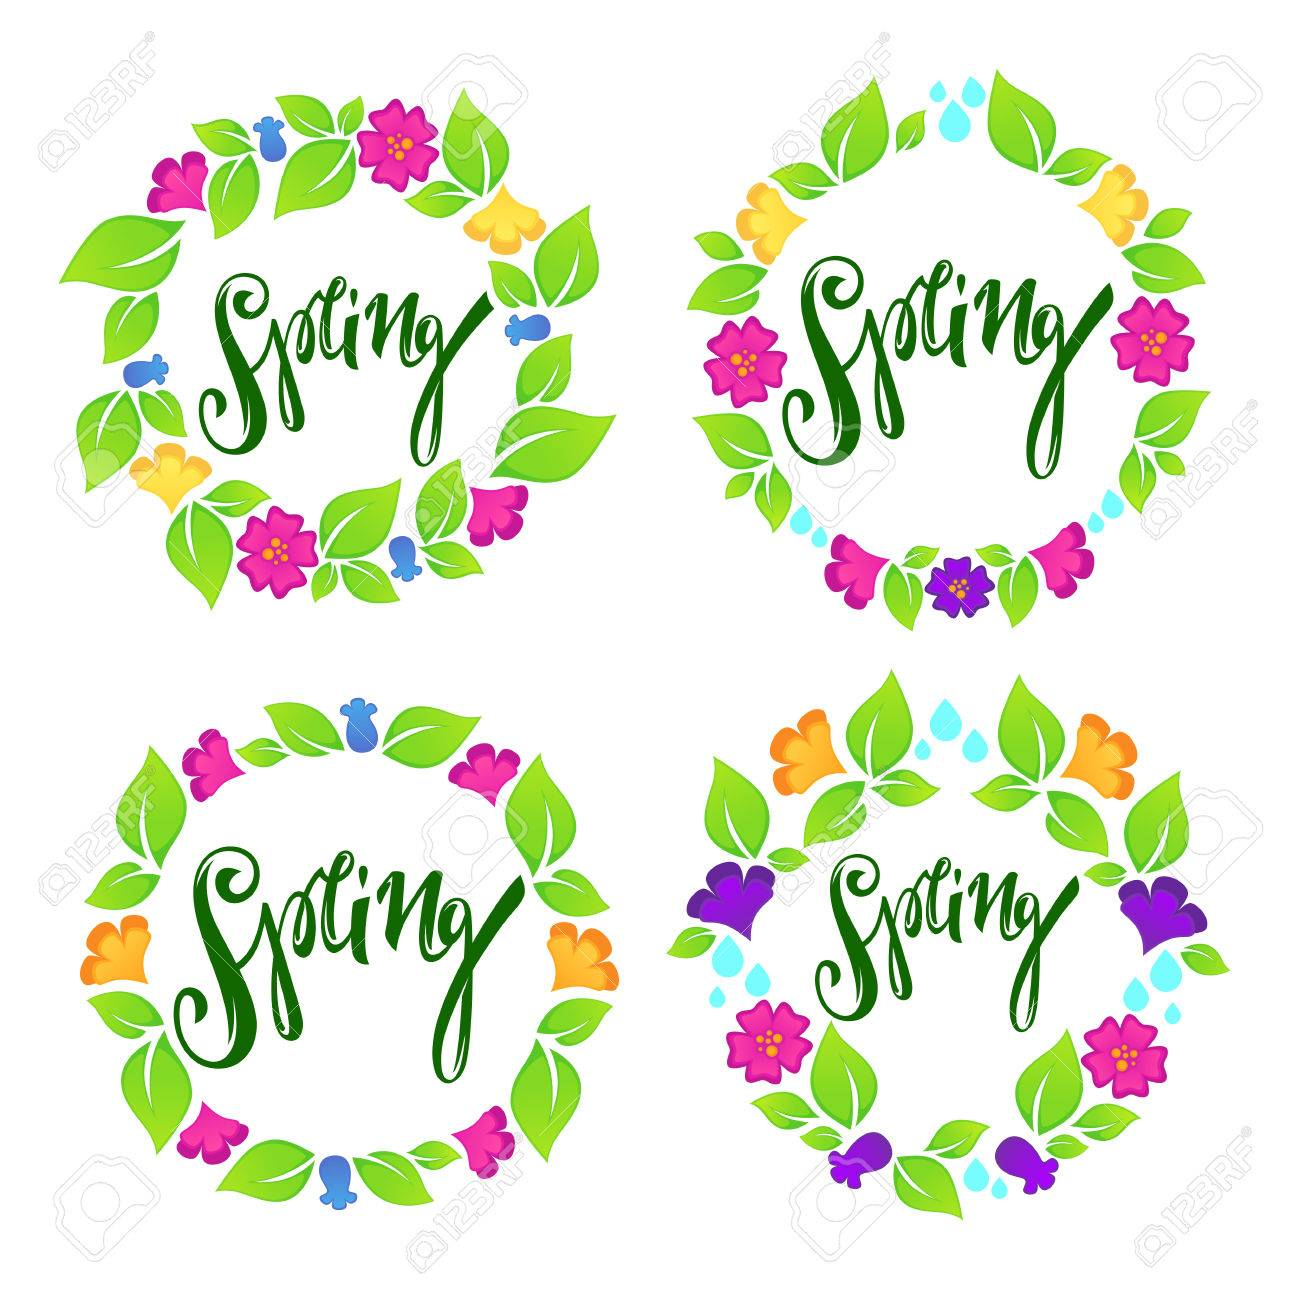 Spring Floral Frames On White Background Royalty Free Cliparts ...